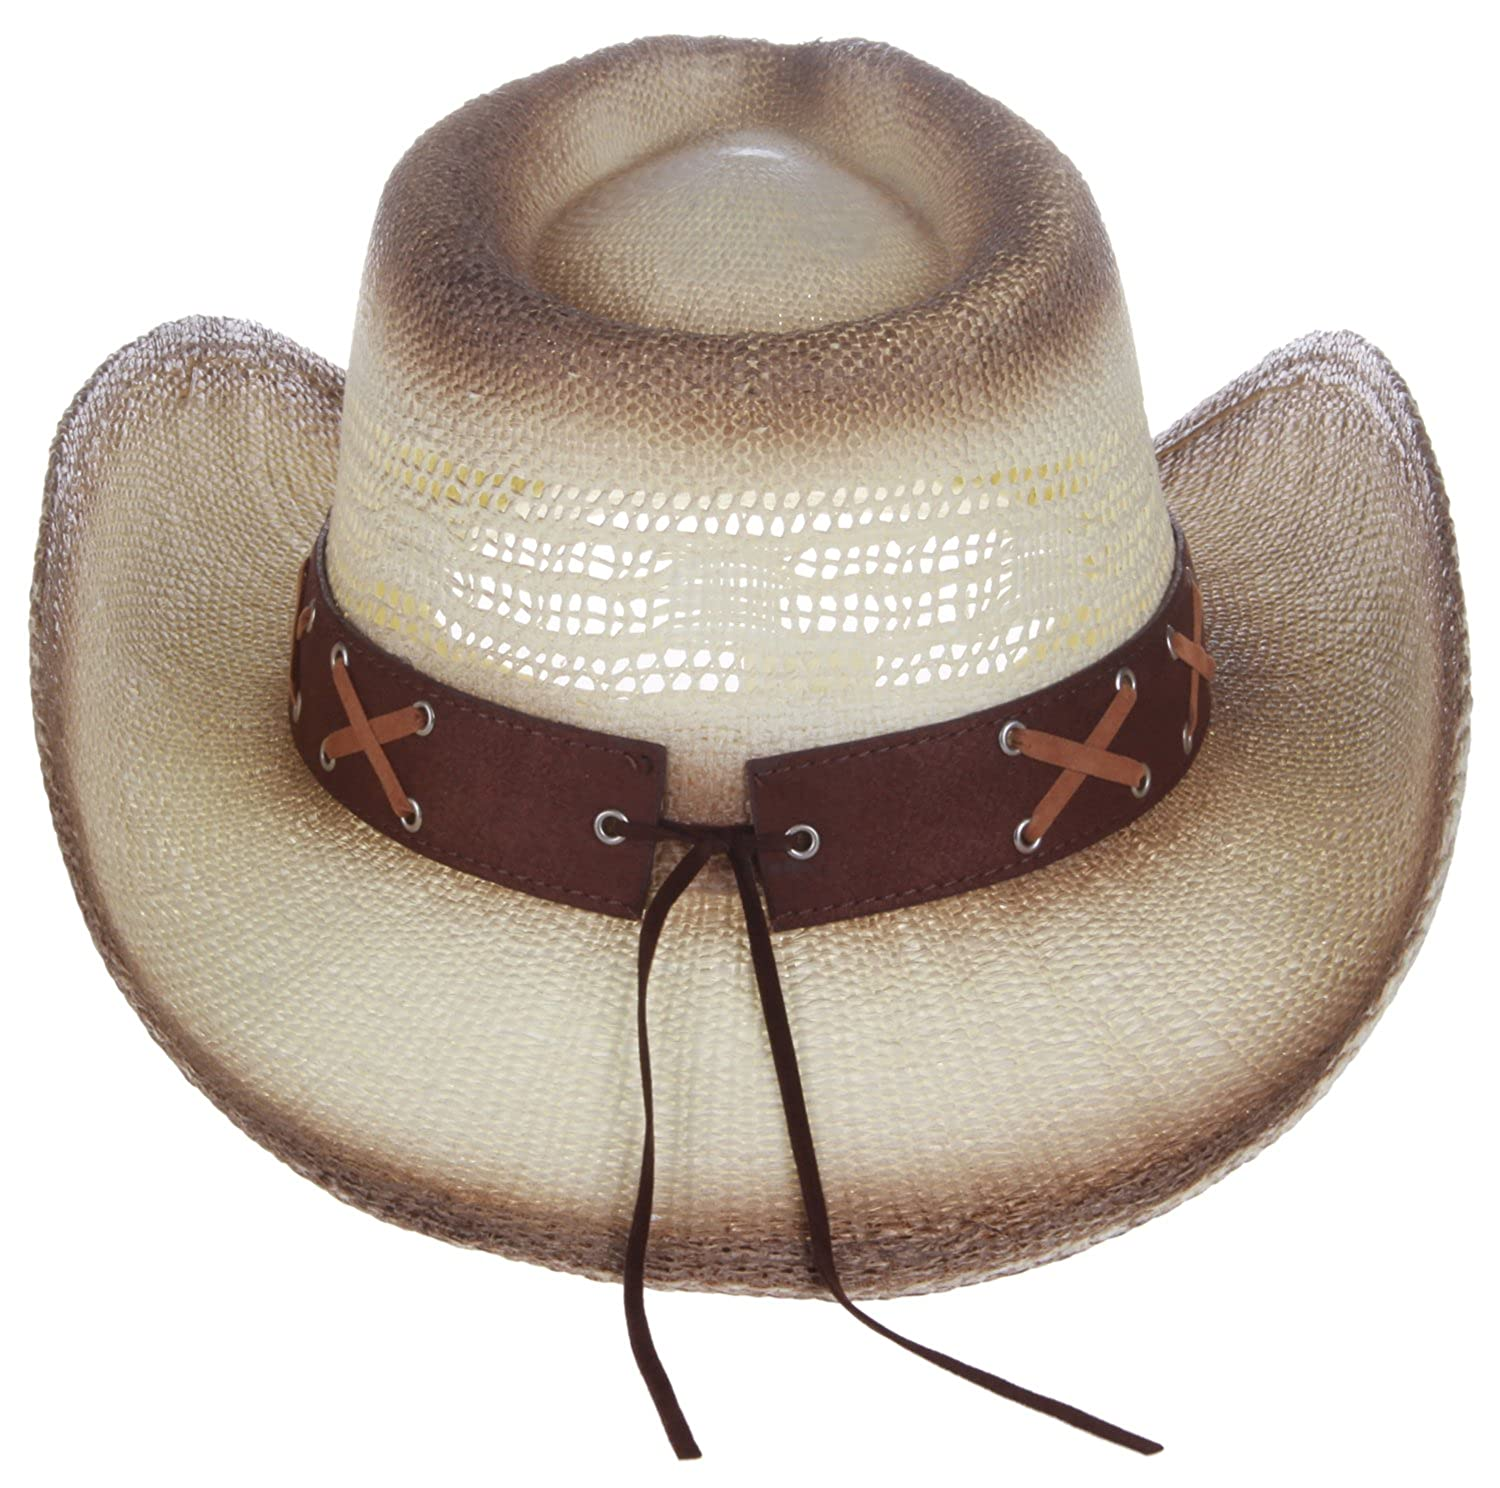 ae66e9e67d725 Enimay Western Outback Cowboy Hat Men s Women s Style Straw Felt Canvas  Bead Blue One Size at Amazon Women s Clothing store